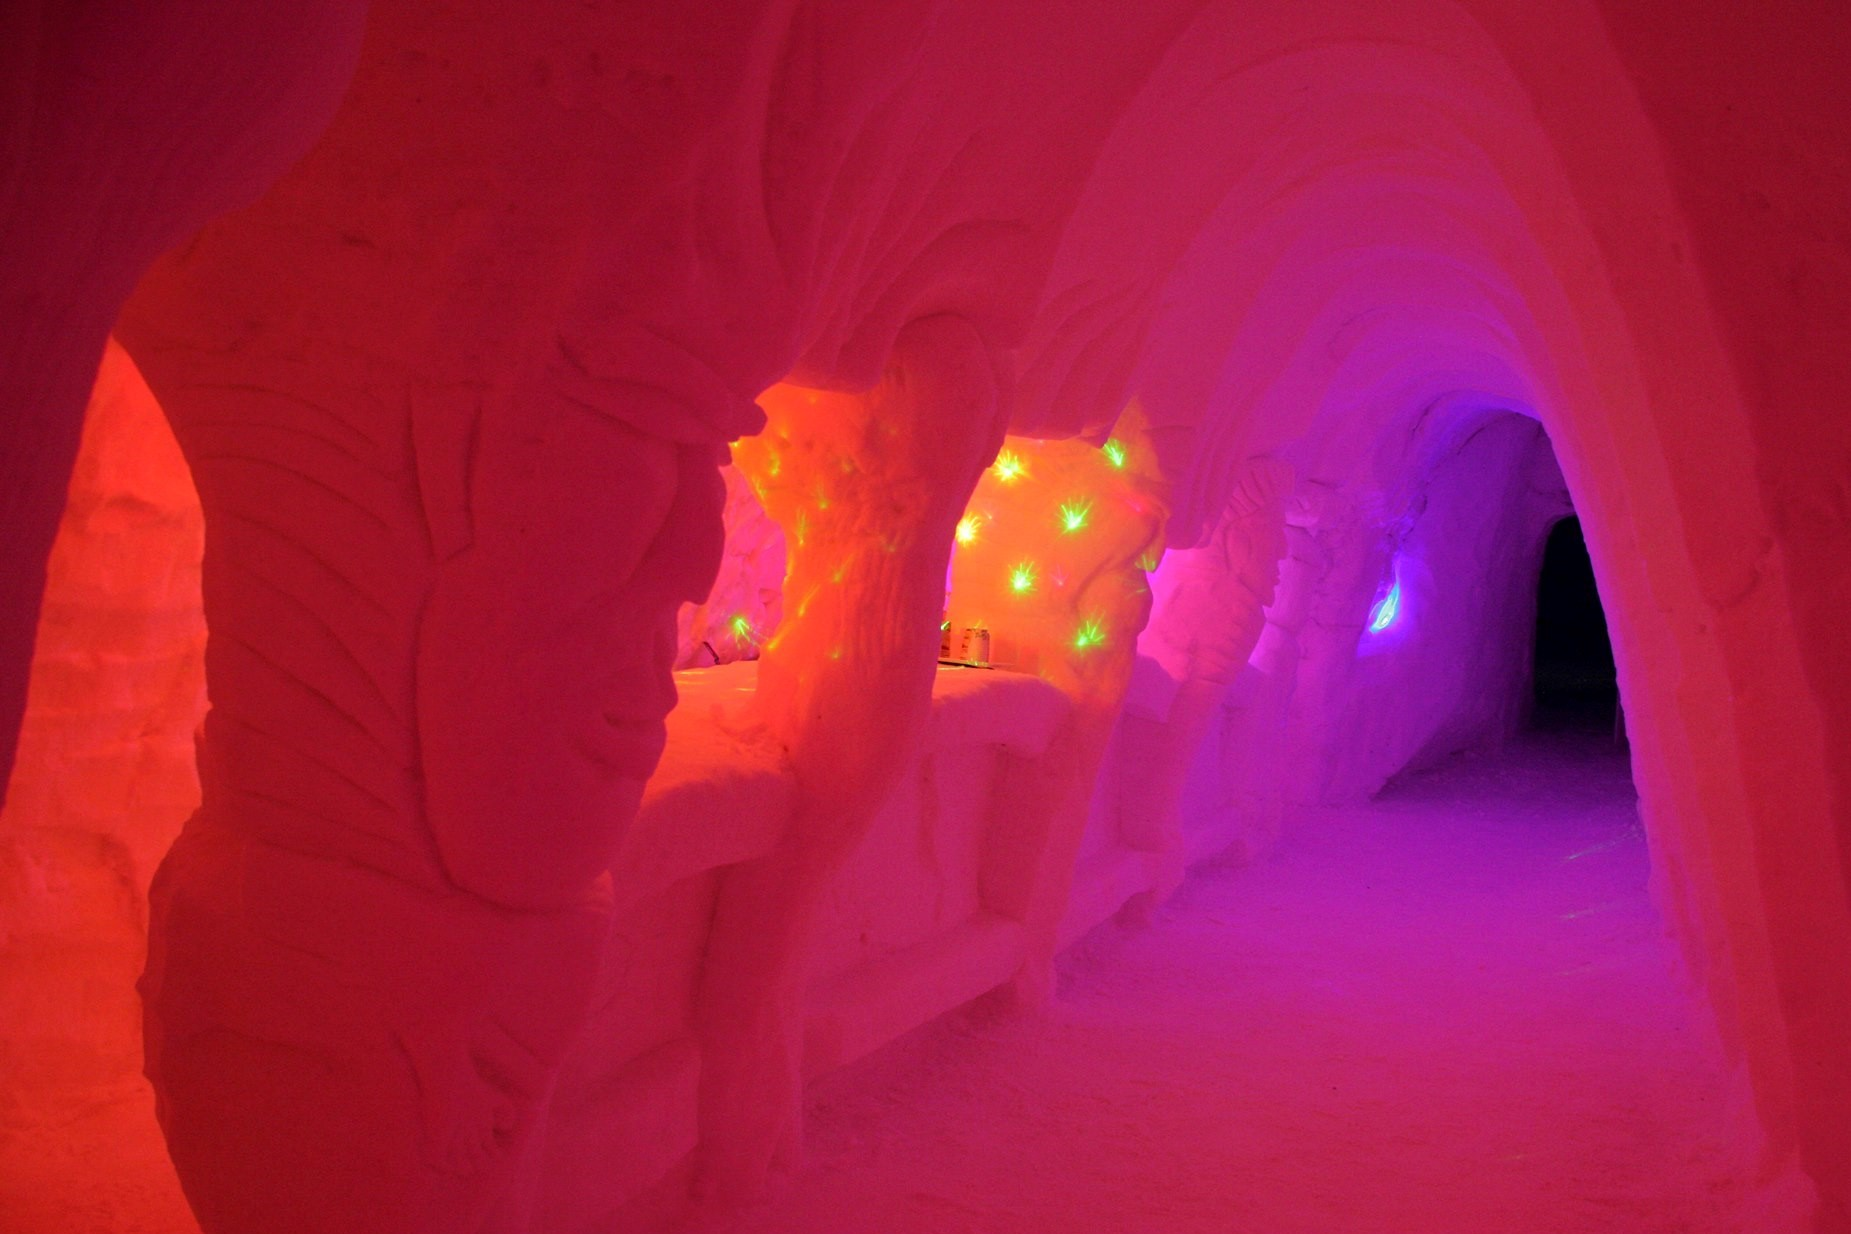 THE IGLOO#Ice cold experience in Les Arcs